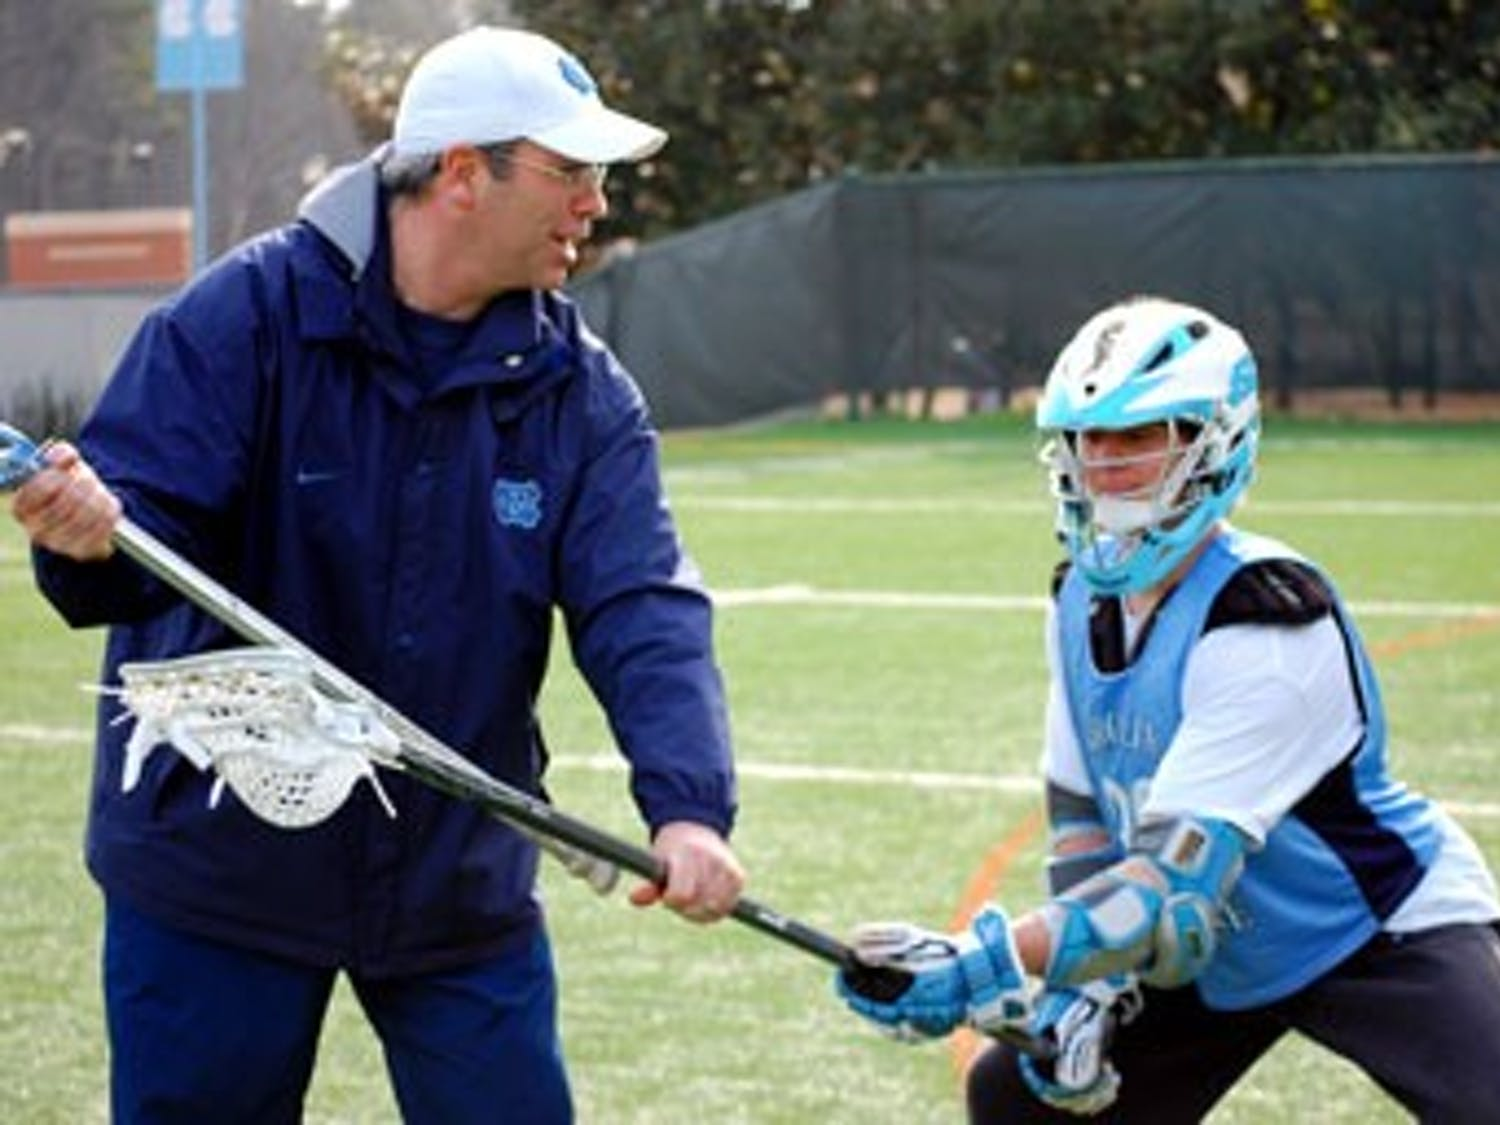 """Lacrosse coach Joe Breschi"""" in his first year at UNC works with freshman Thomas Wood after practice. Breschi and the team started the season 6-0."""